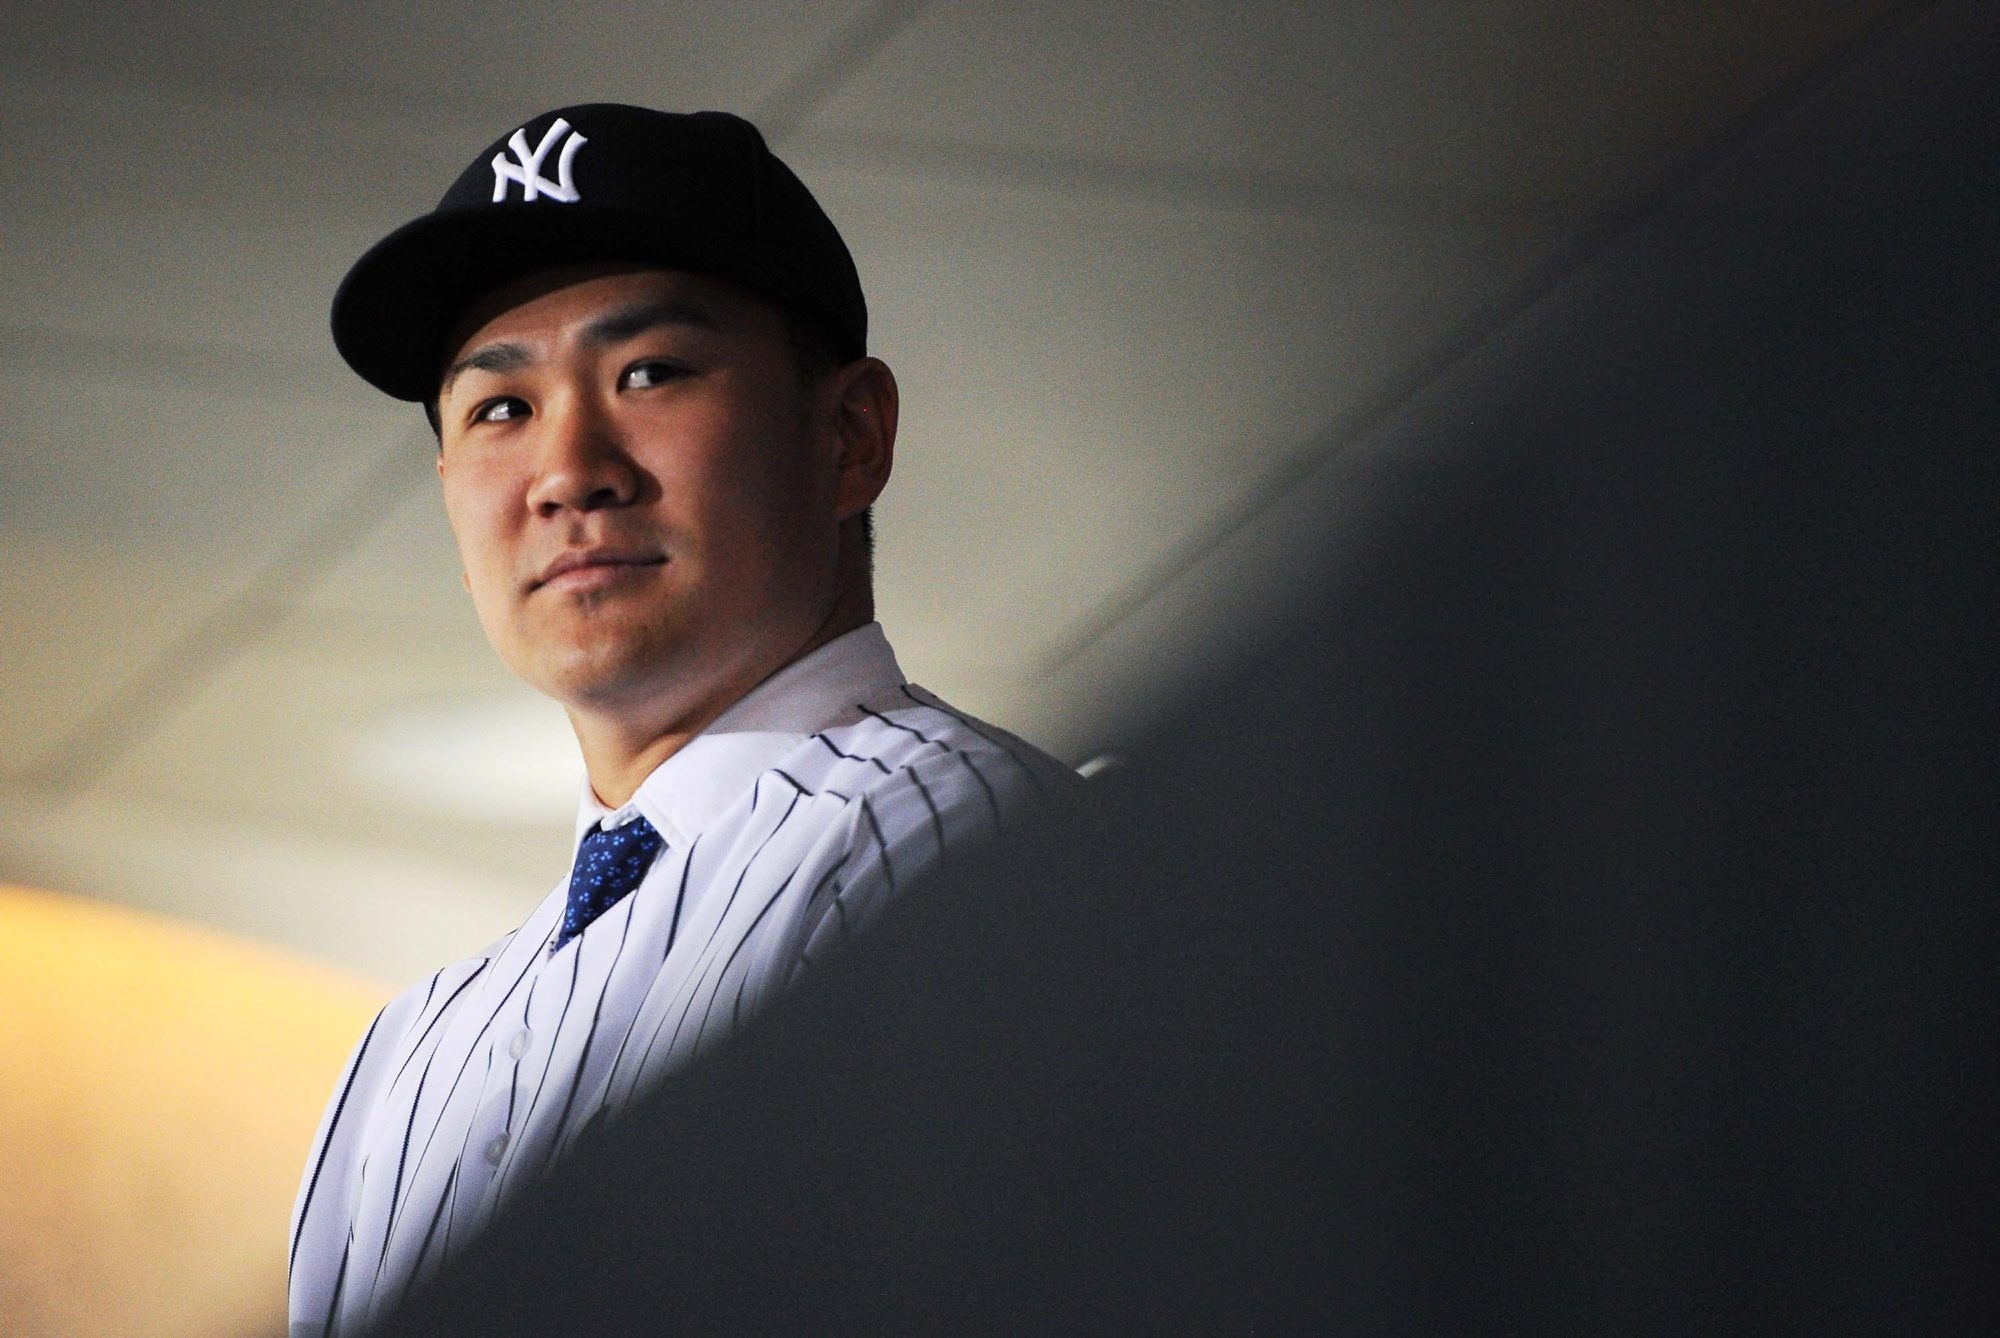 The Yankees are paying Japanese import Masahiro Tanaka $155 million for seven years, though Tanaka has yet to pitch a real game in the major leagues.